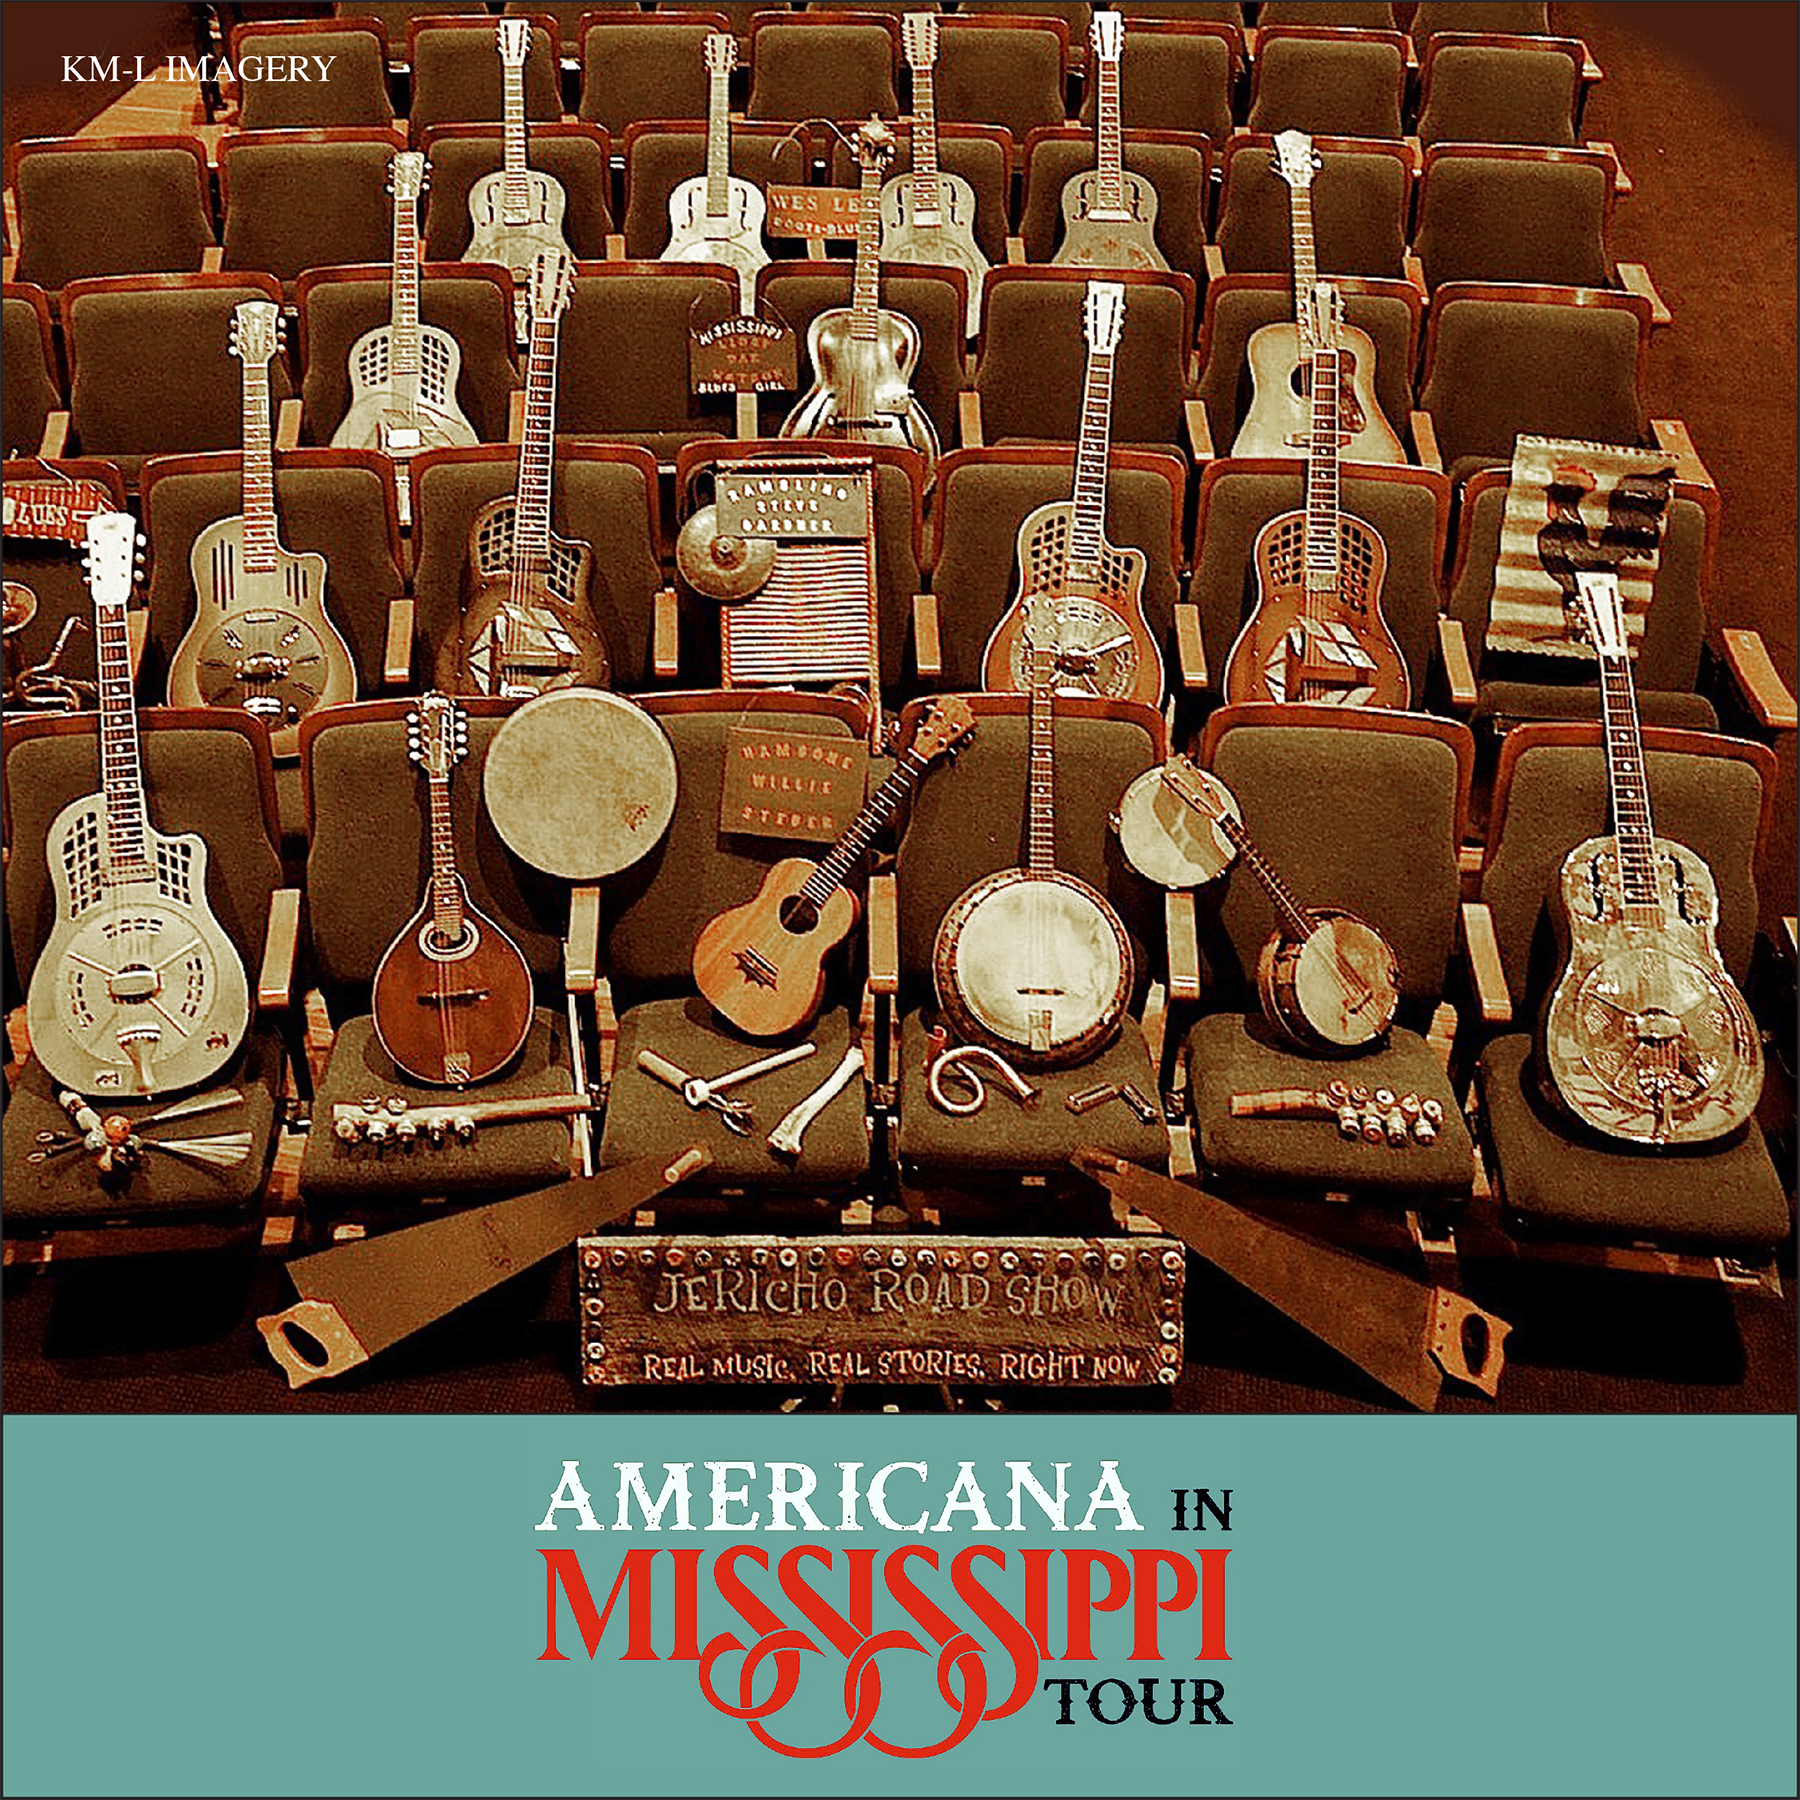 Americana MS. Tour 2016/Jericho Road Show Gallery